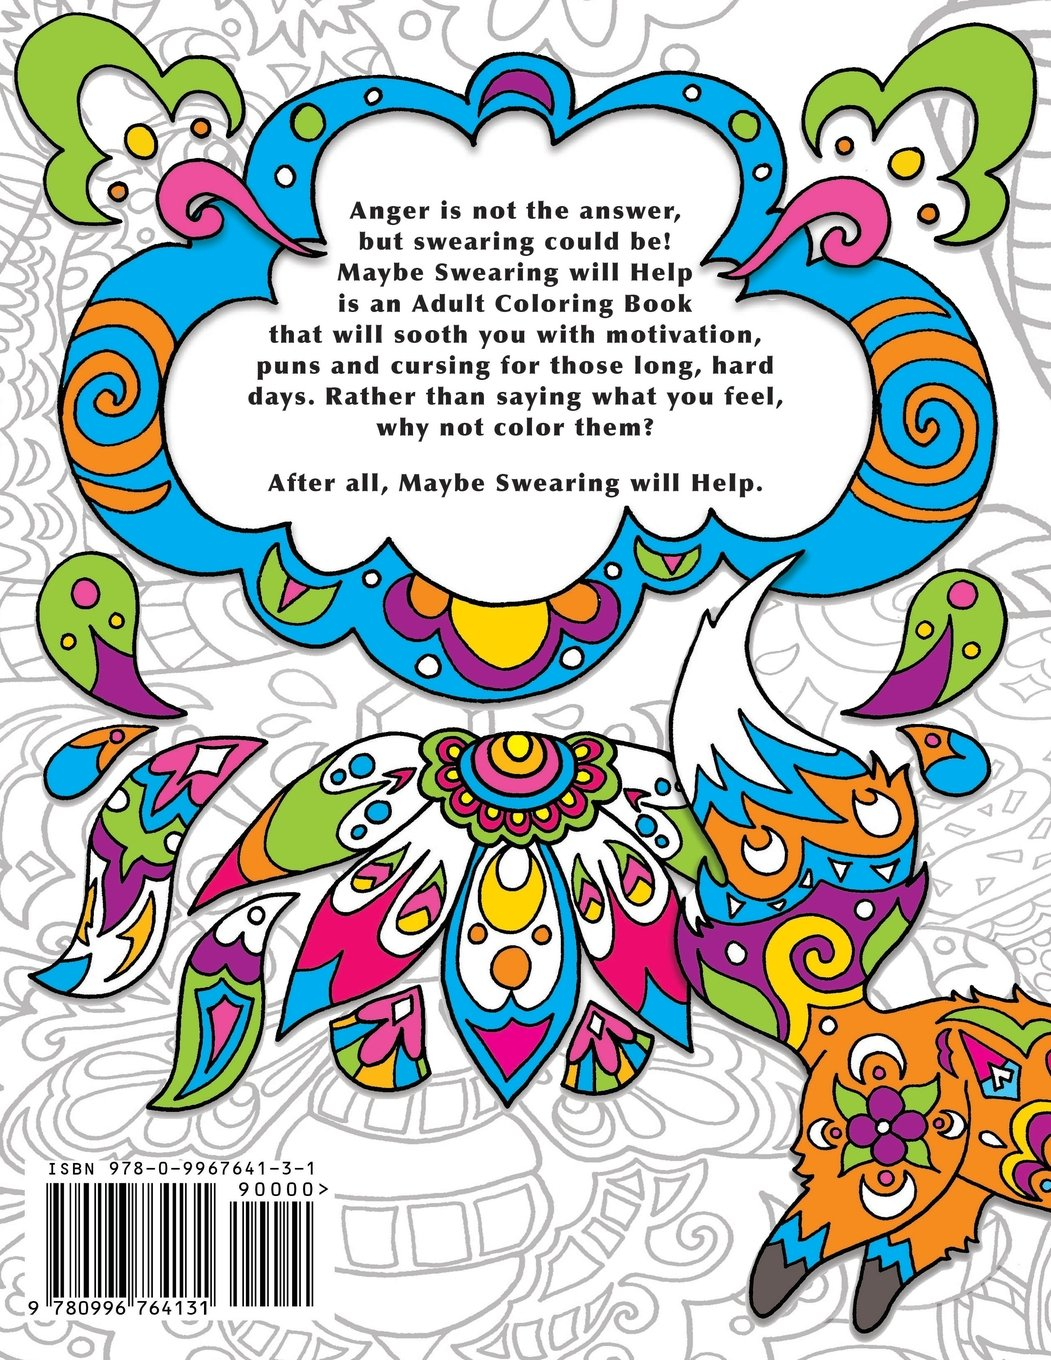 Amazon Com Maybe Swearing Will Help Adult Coloring Book